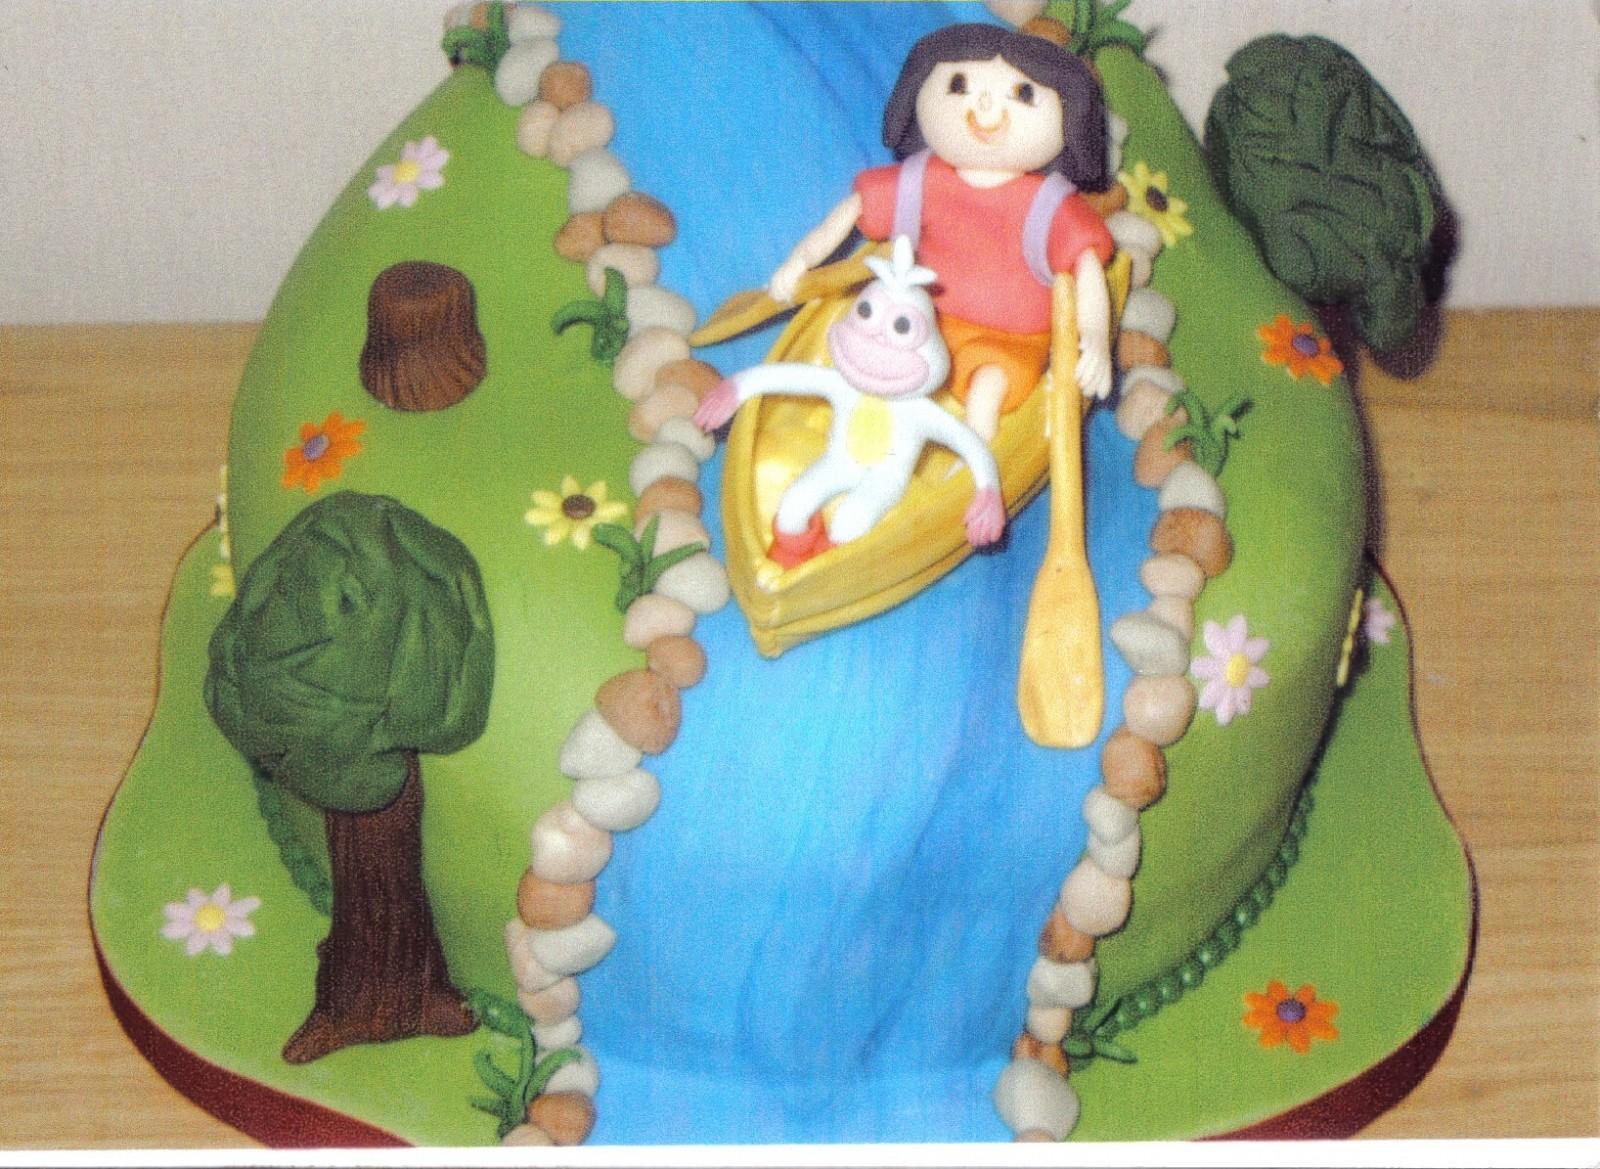 Sensational Dora The Explorer Novelty Birthday Cake Susies Cakes Personalised Birthday Cards Veneteletsinfo